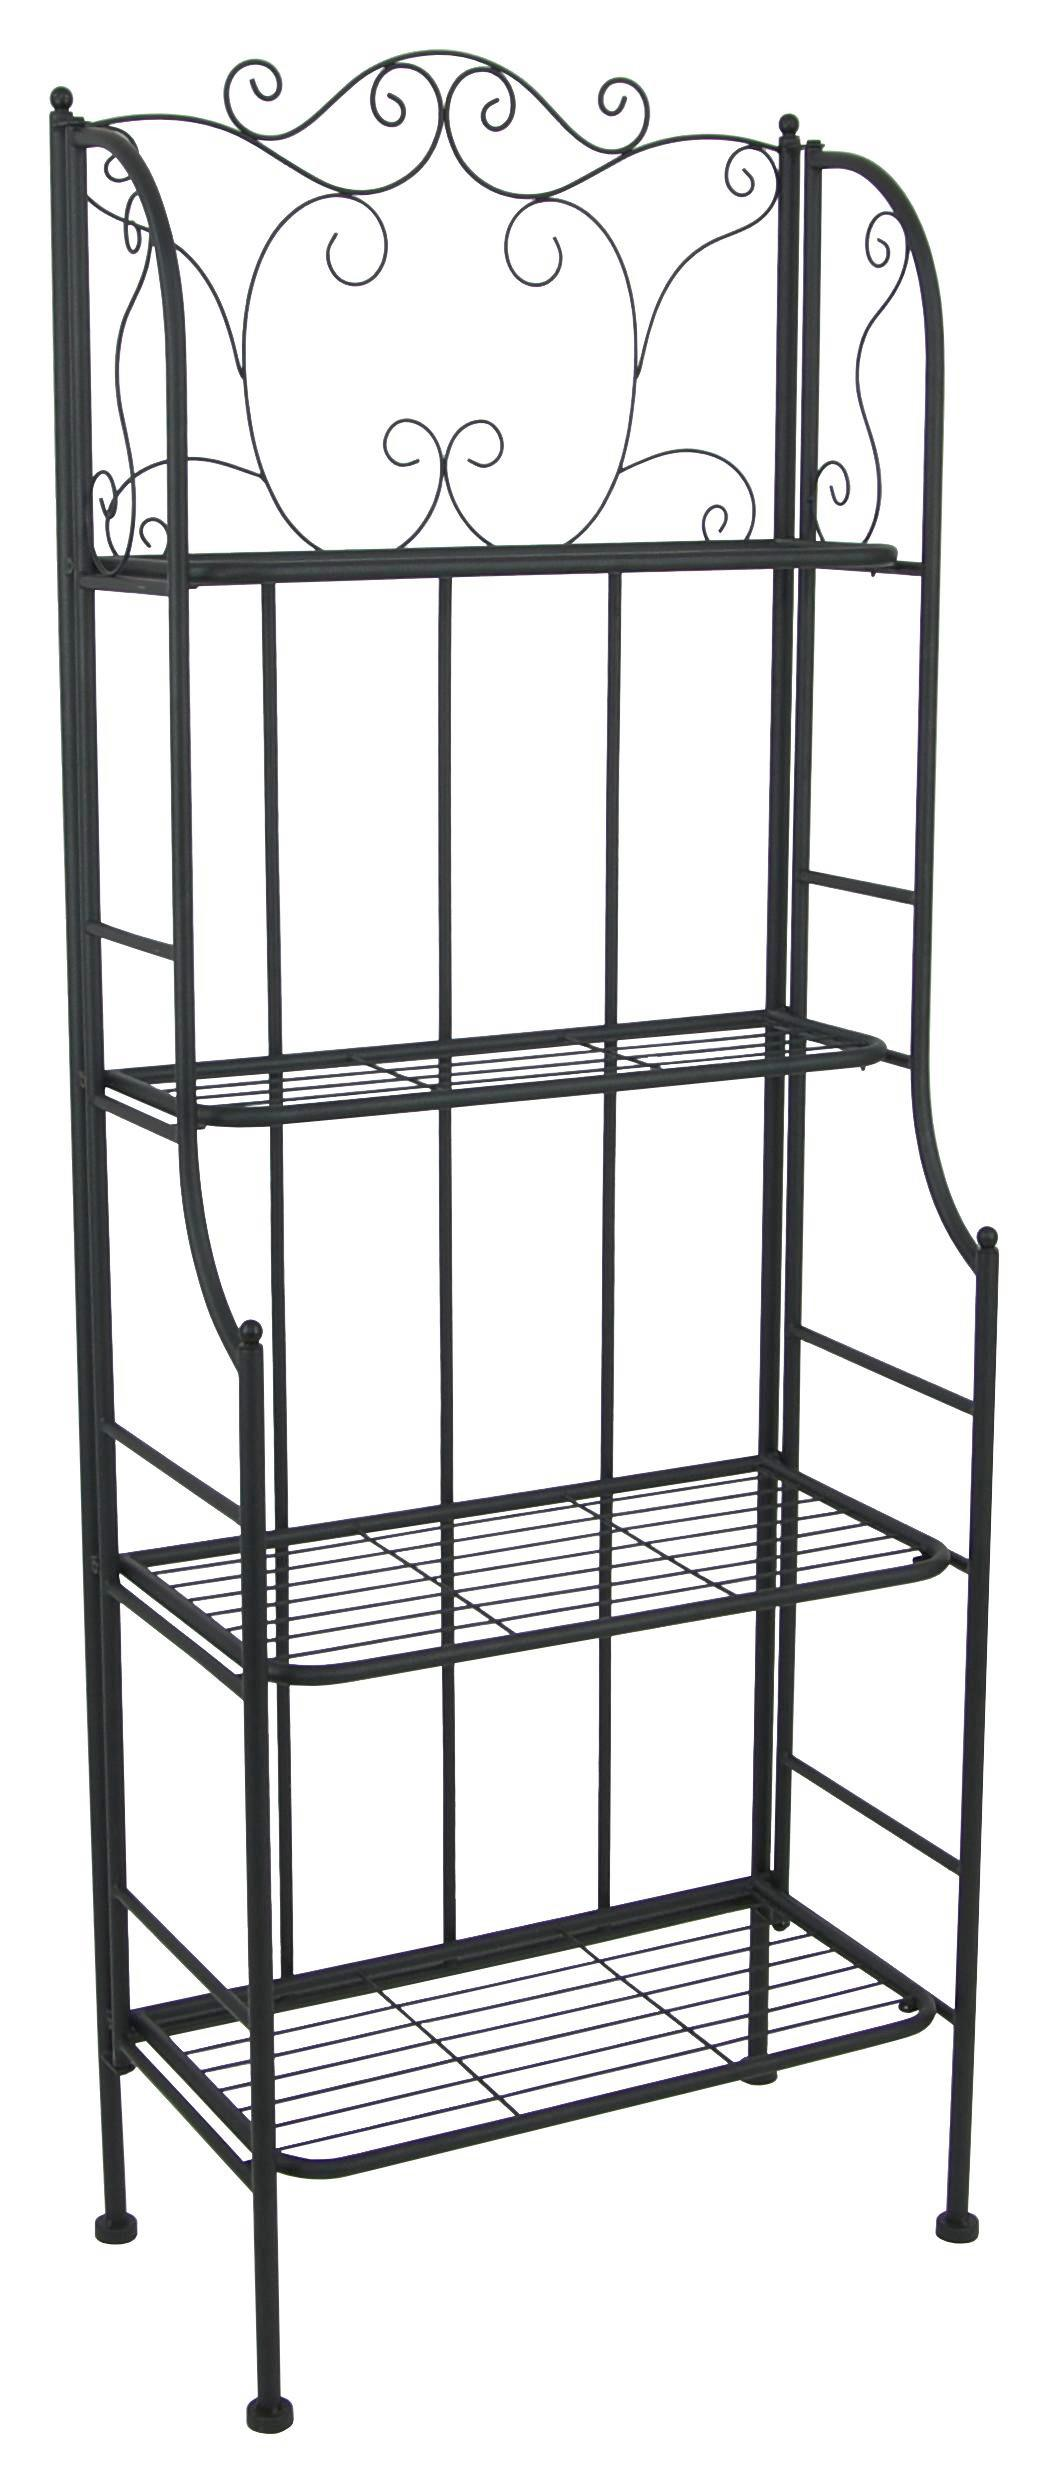 Regal Schwarz Metall Regal Shelf